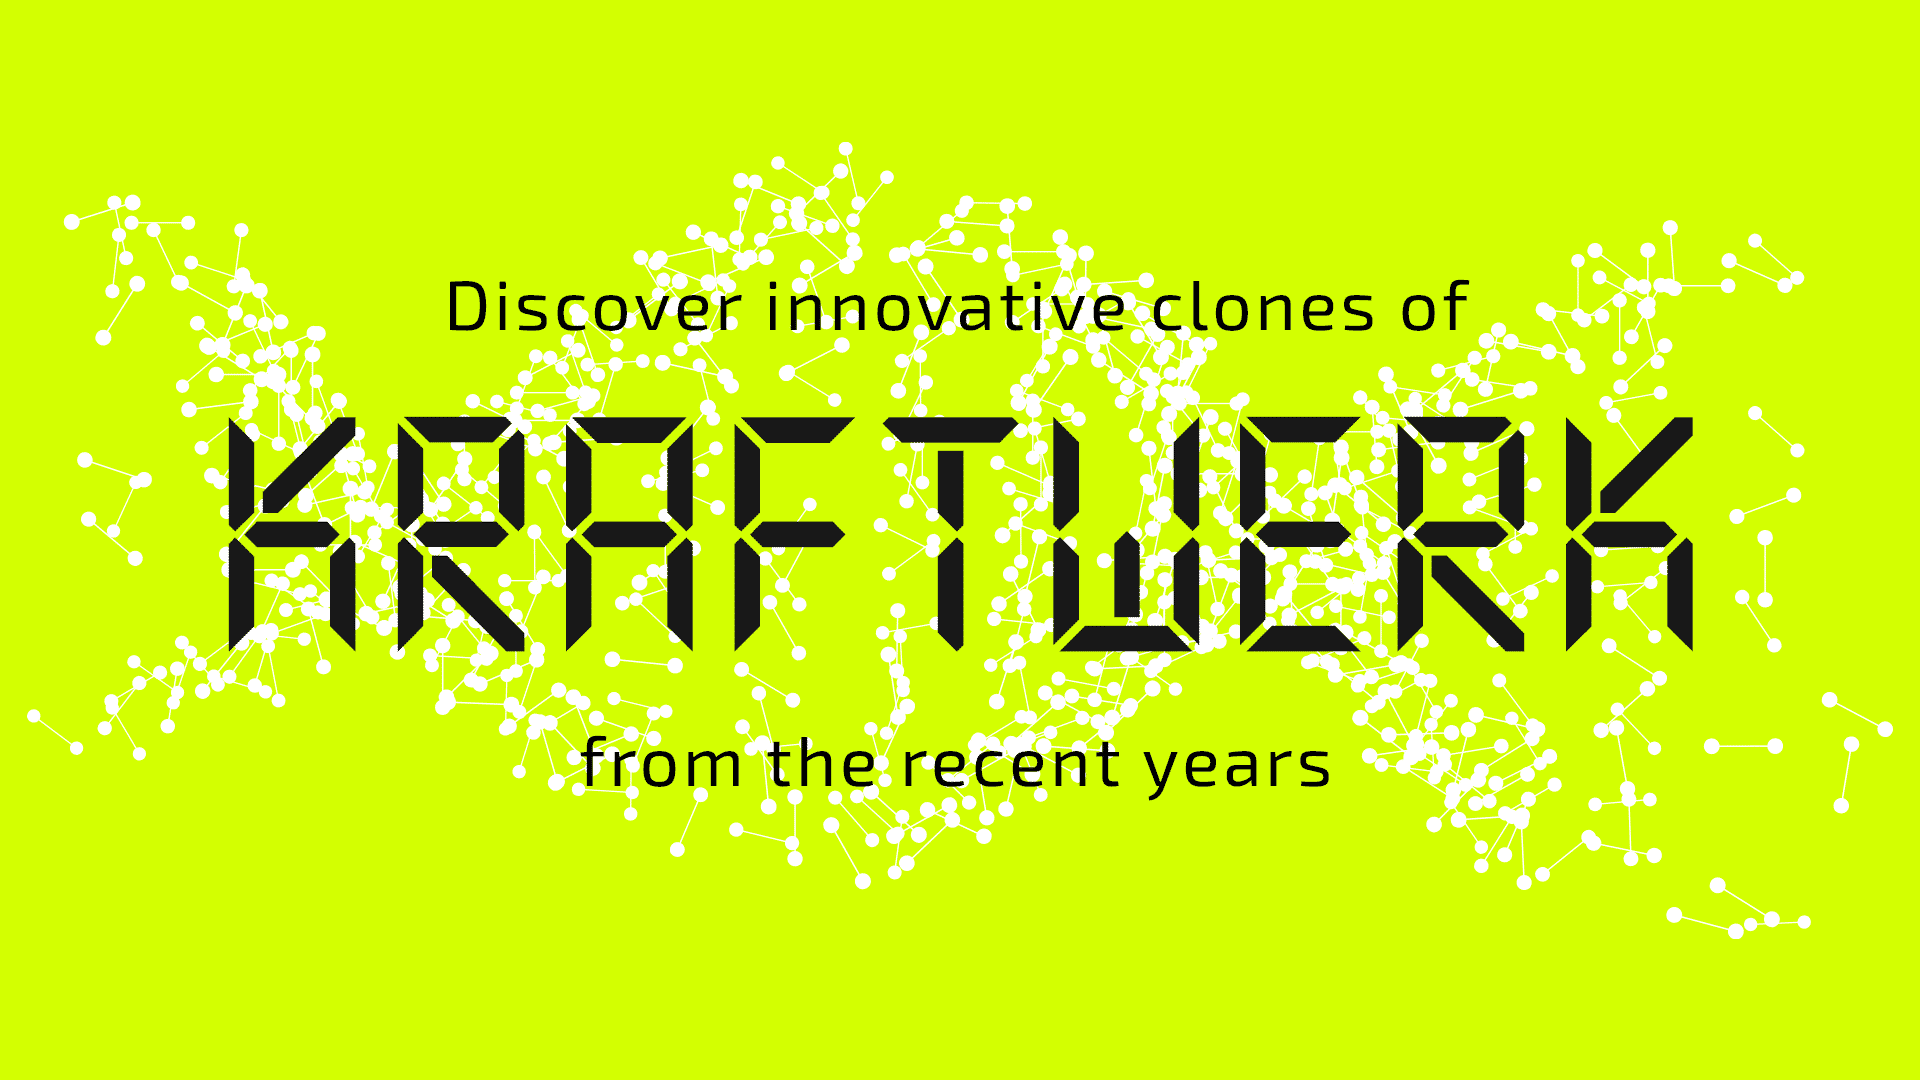 Discover innovative clones of Kraftwerk from the recent years